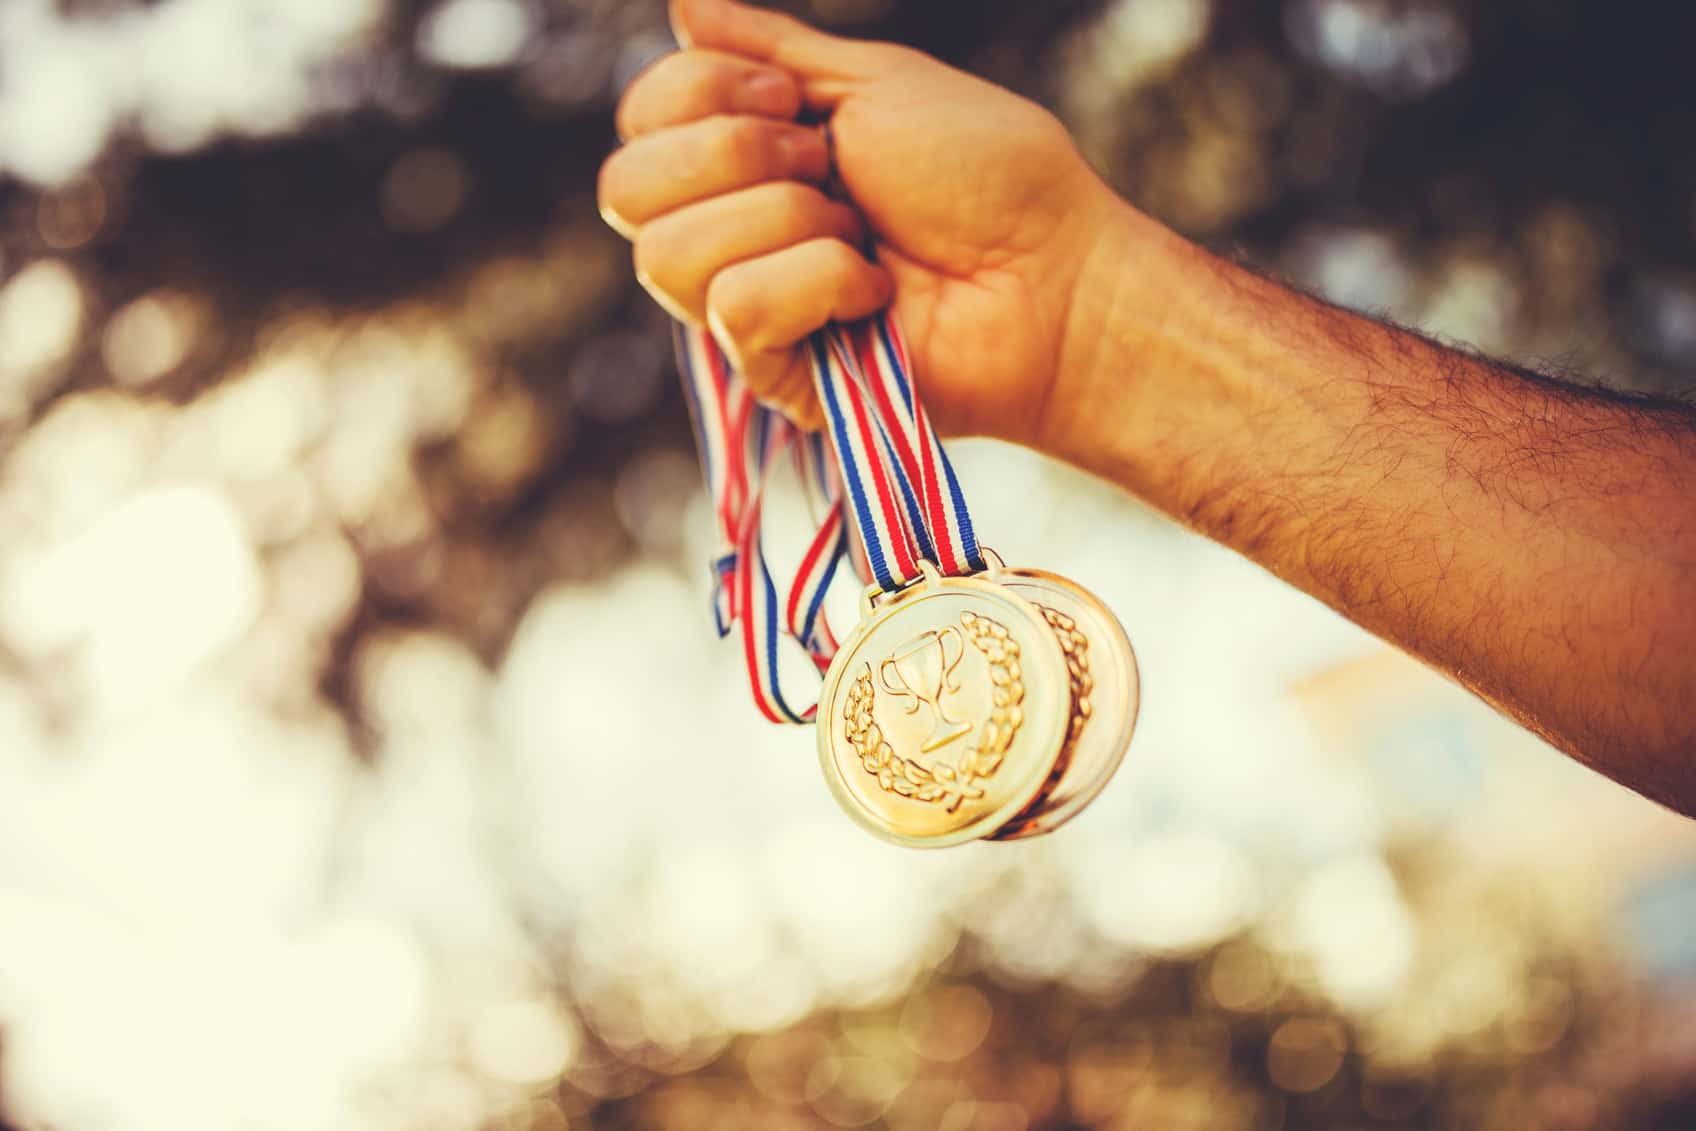 That Gold Medal is Great, but How About Those Ribbons ...